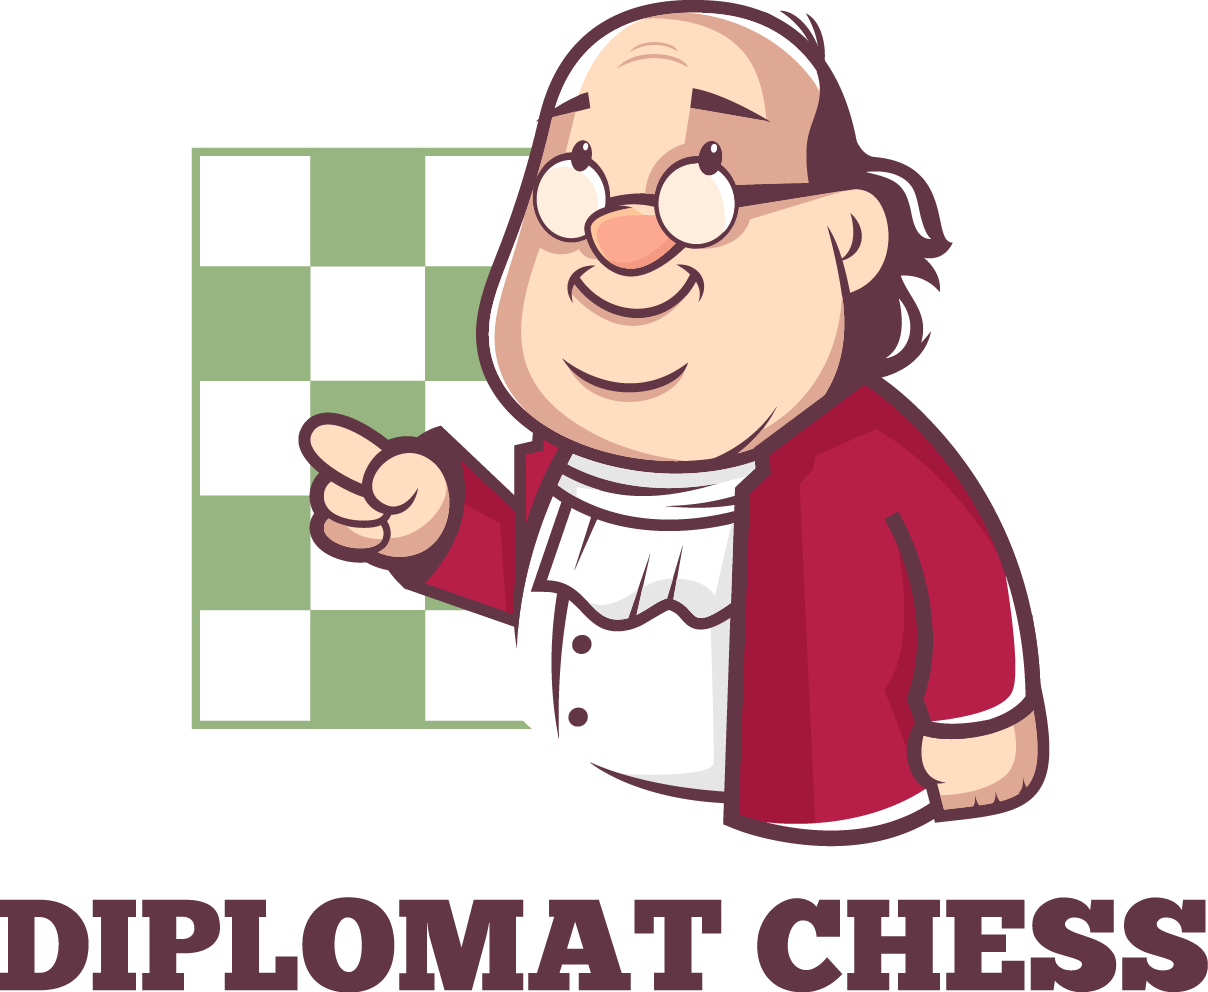 Nest clipart early bird. Diplomat chess nyc calendar